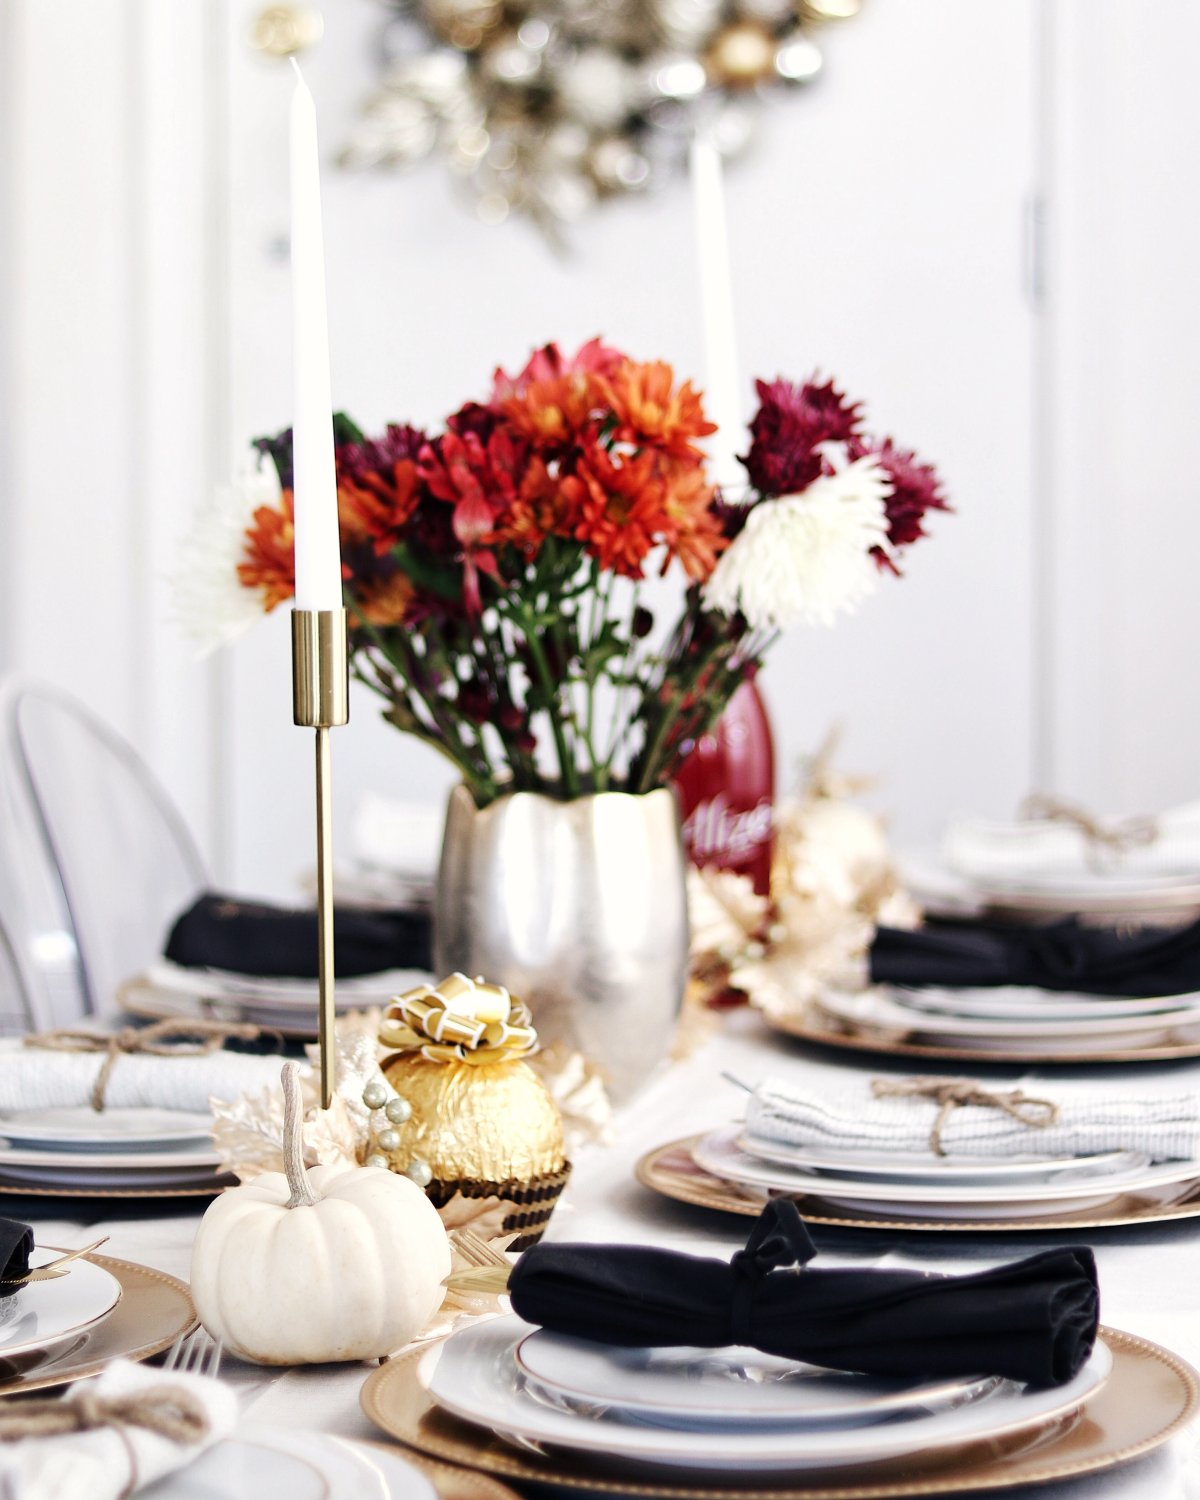 Tips for Hosting Your First Thanksgiving!